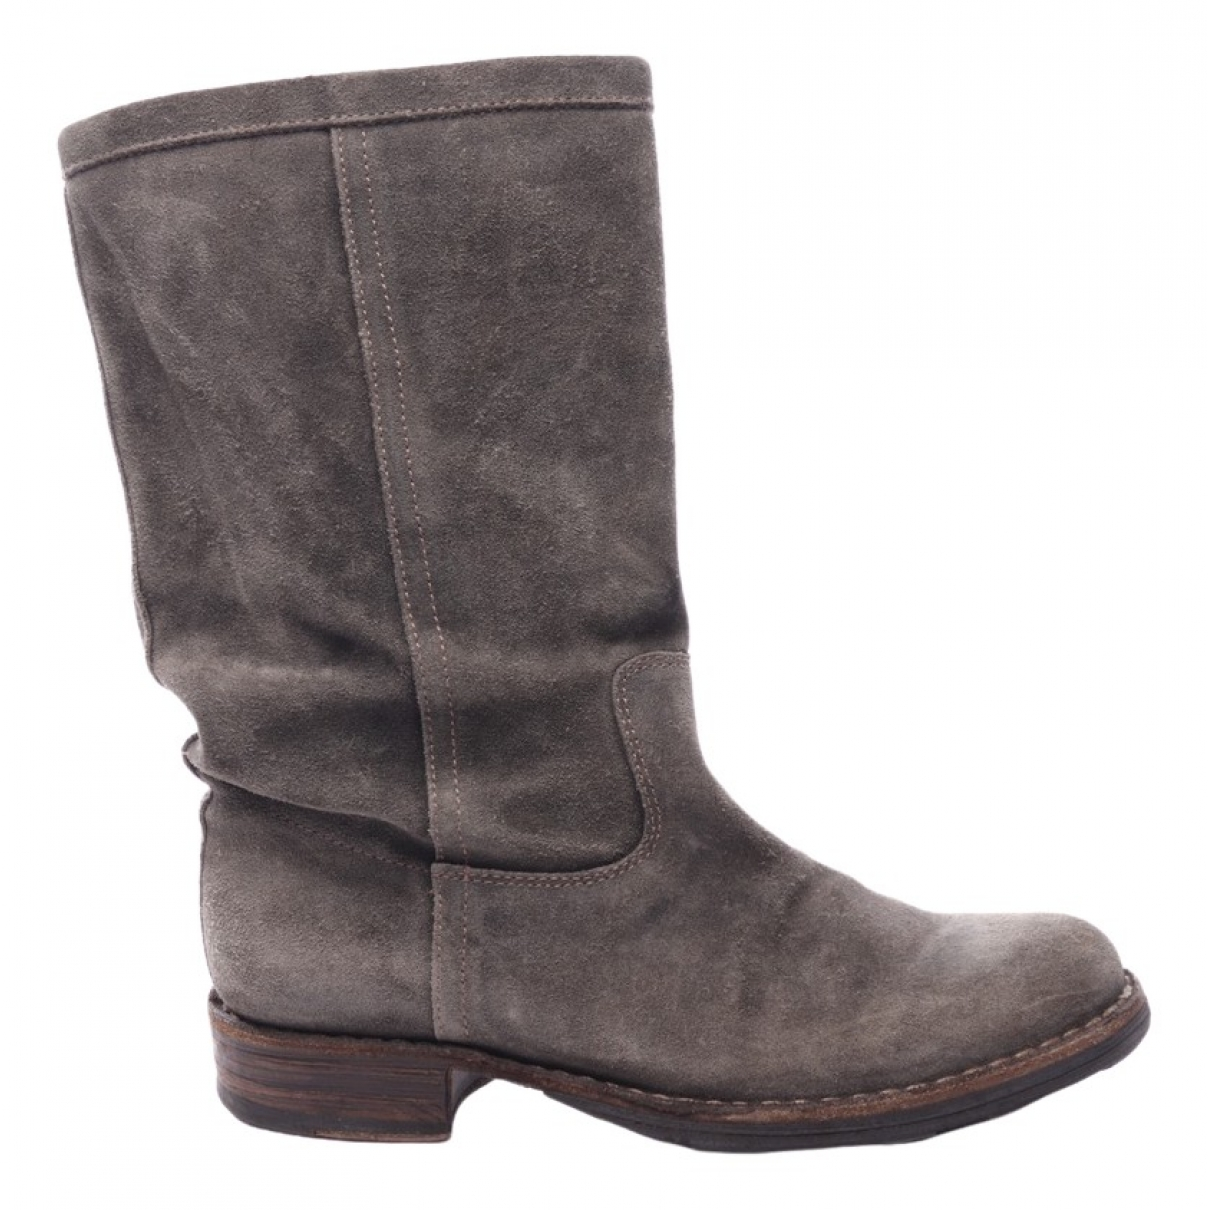 Fiorentini+baker \N Grey Leather Boots for Women 37 EU